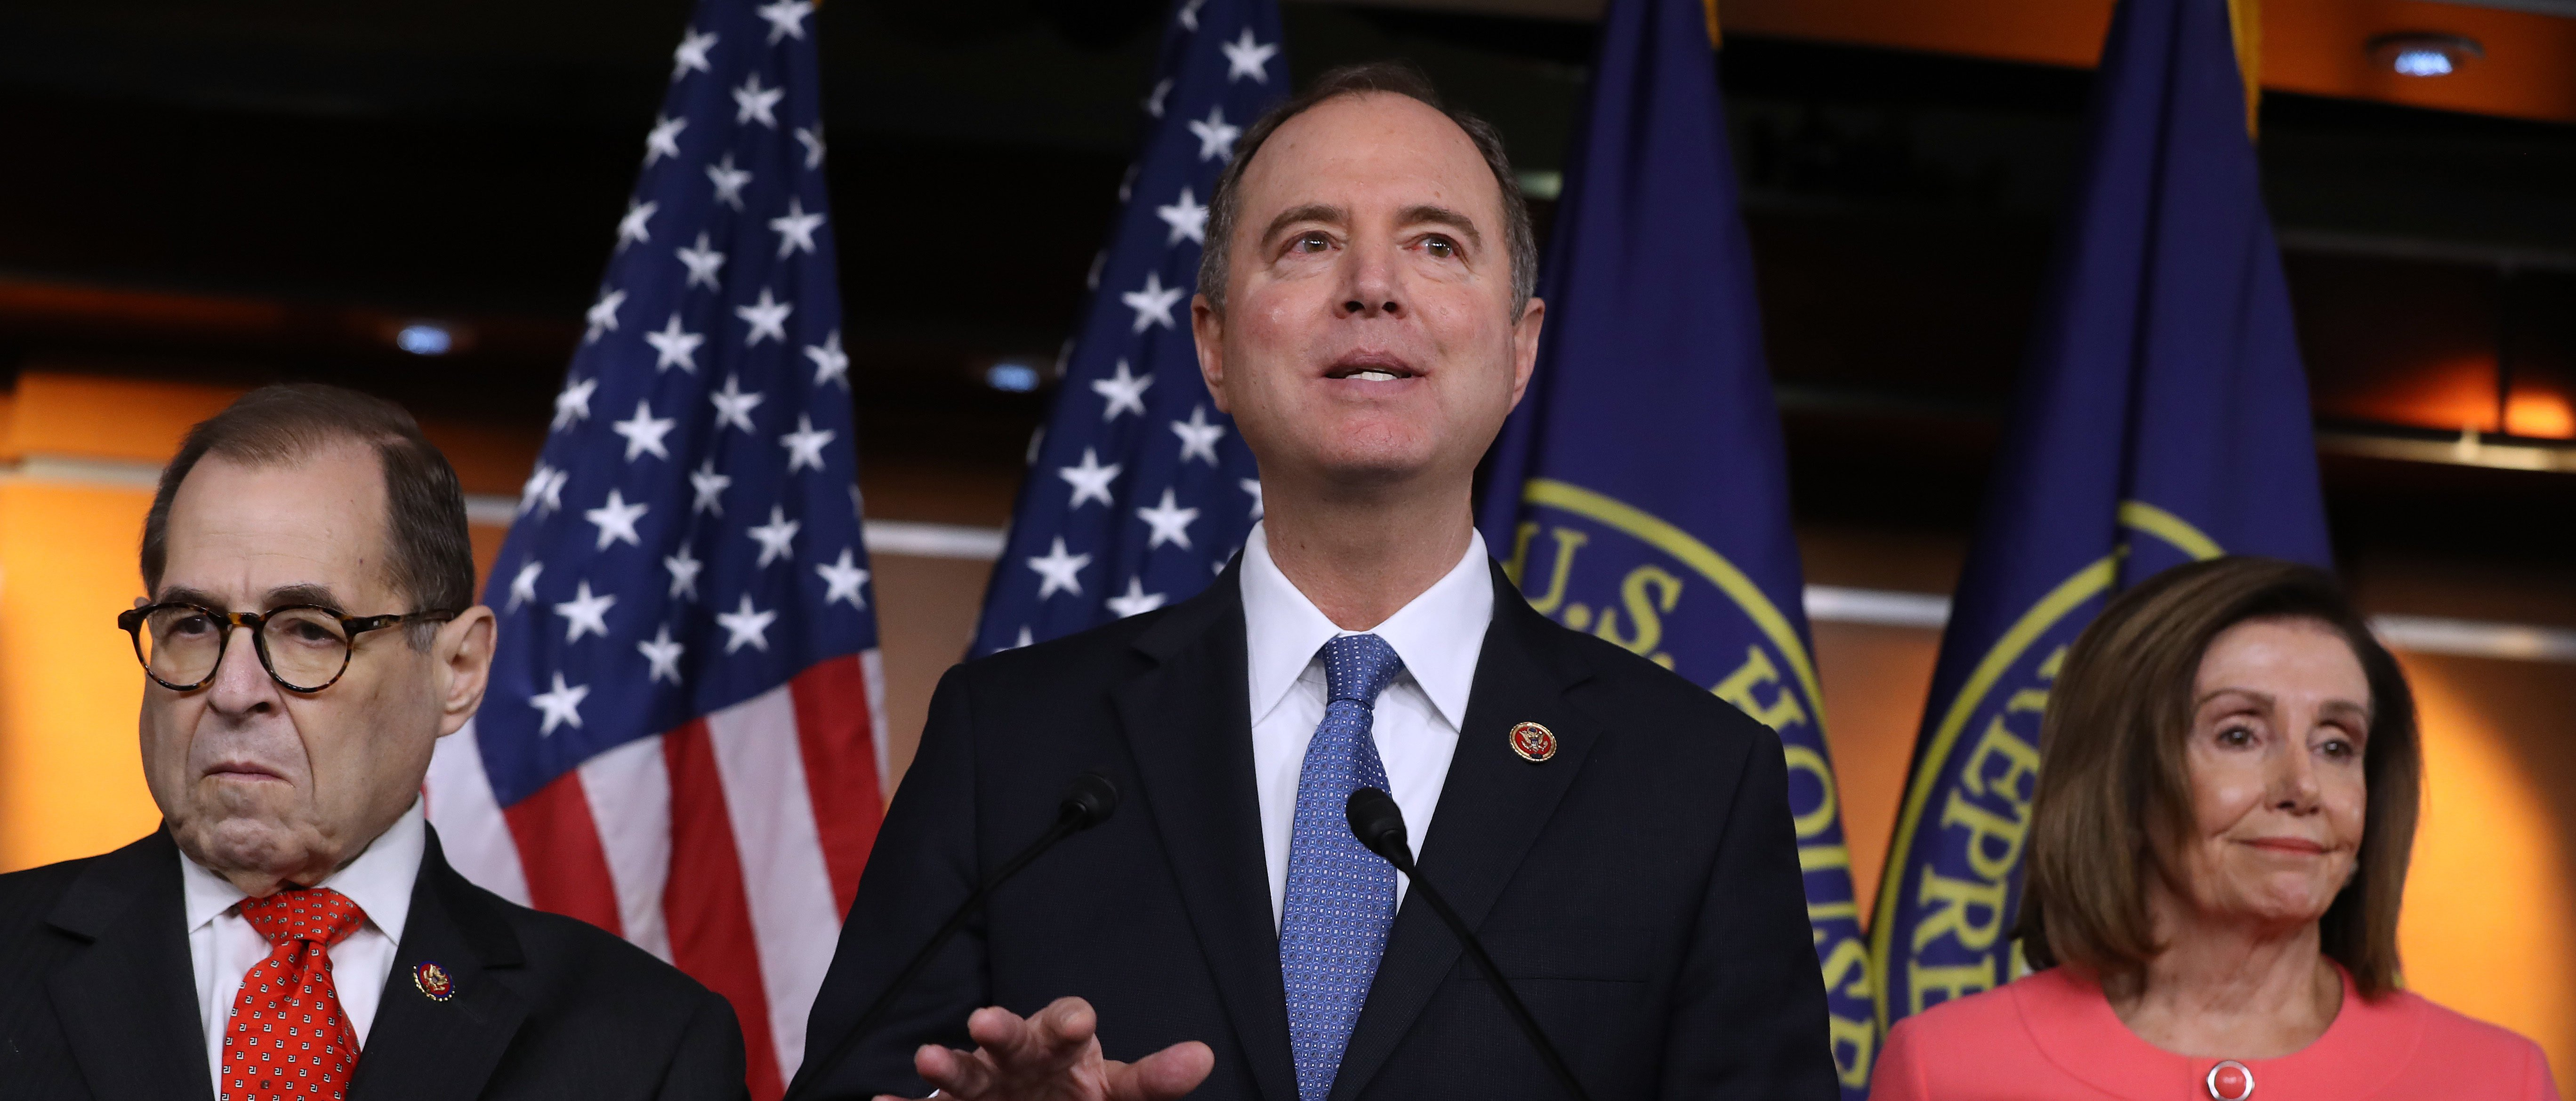 WASHINGTON, DC - JANUARY 15: House Intelligence Committee Chairman Adam Schiff (D-CA) (C) speaks after U.S. Speaker of the House Nancy Pelosi (D-CA) (R) announces that he and House Judiciary Committee Chairman Jerrold Nadler (D-NY) and five additional members will be managers of the Senate impeachment trial of President Donald Trump at the U.S. Capitol January 15, 2020 in Washington, DC. The House of Representatives is scheduled to vote to send the articles of impeachment to the Senate later in the day and Senate Majority Leader Mitch McConnell (R-KY) said the trial will begin next Tuesday. (Photo by Chip Somodevilla/Getty Images)